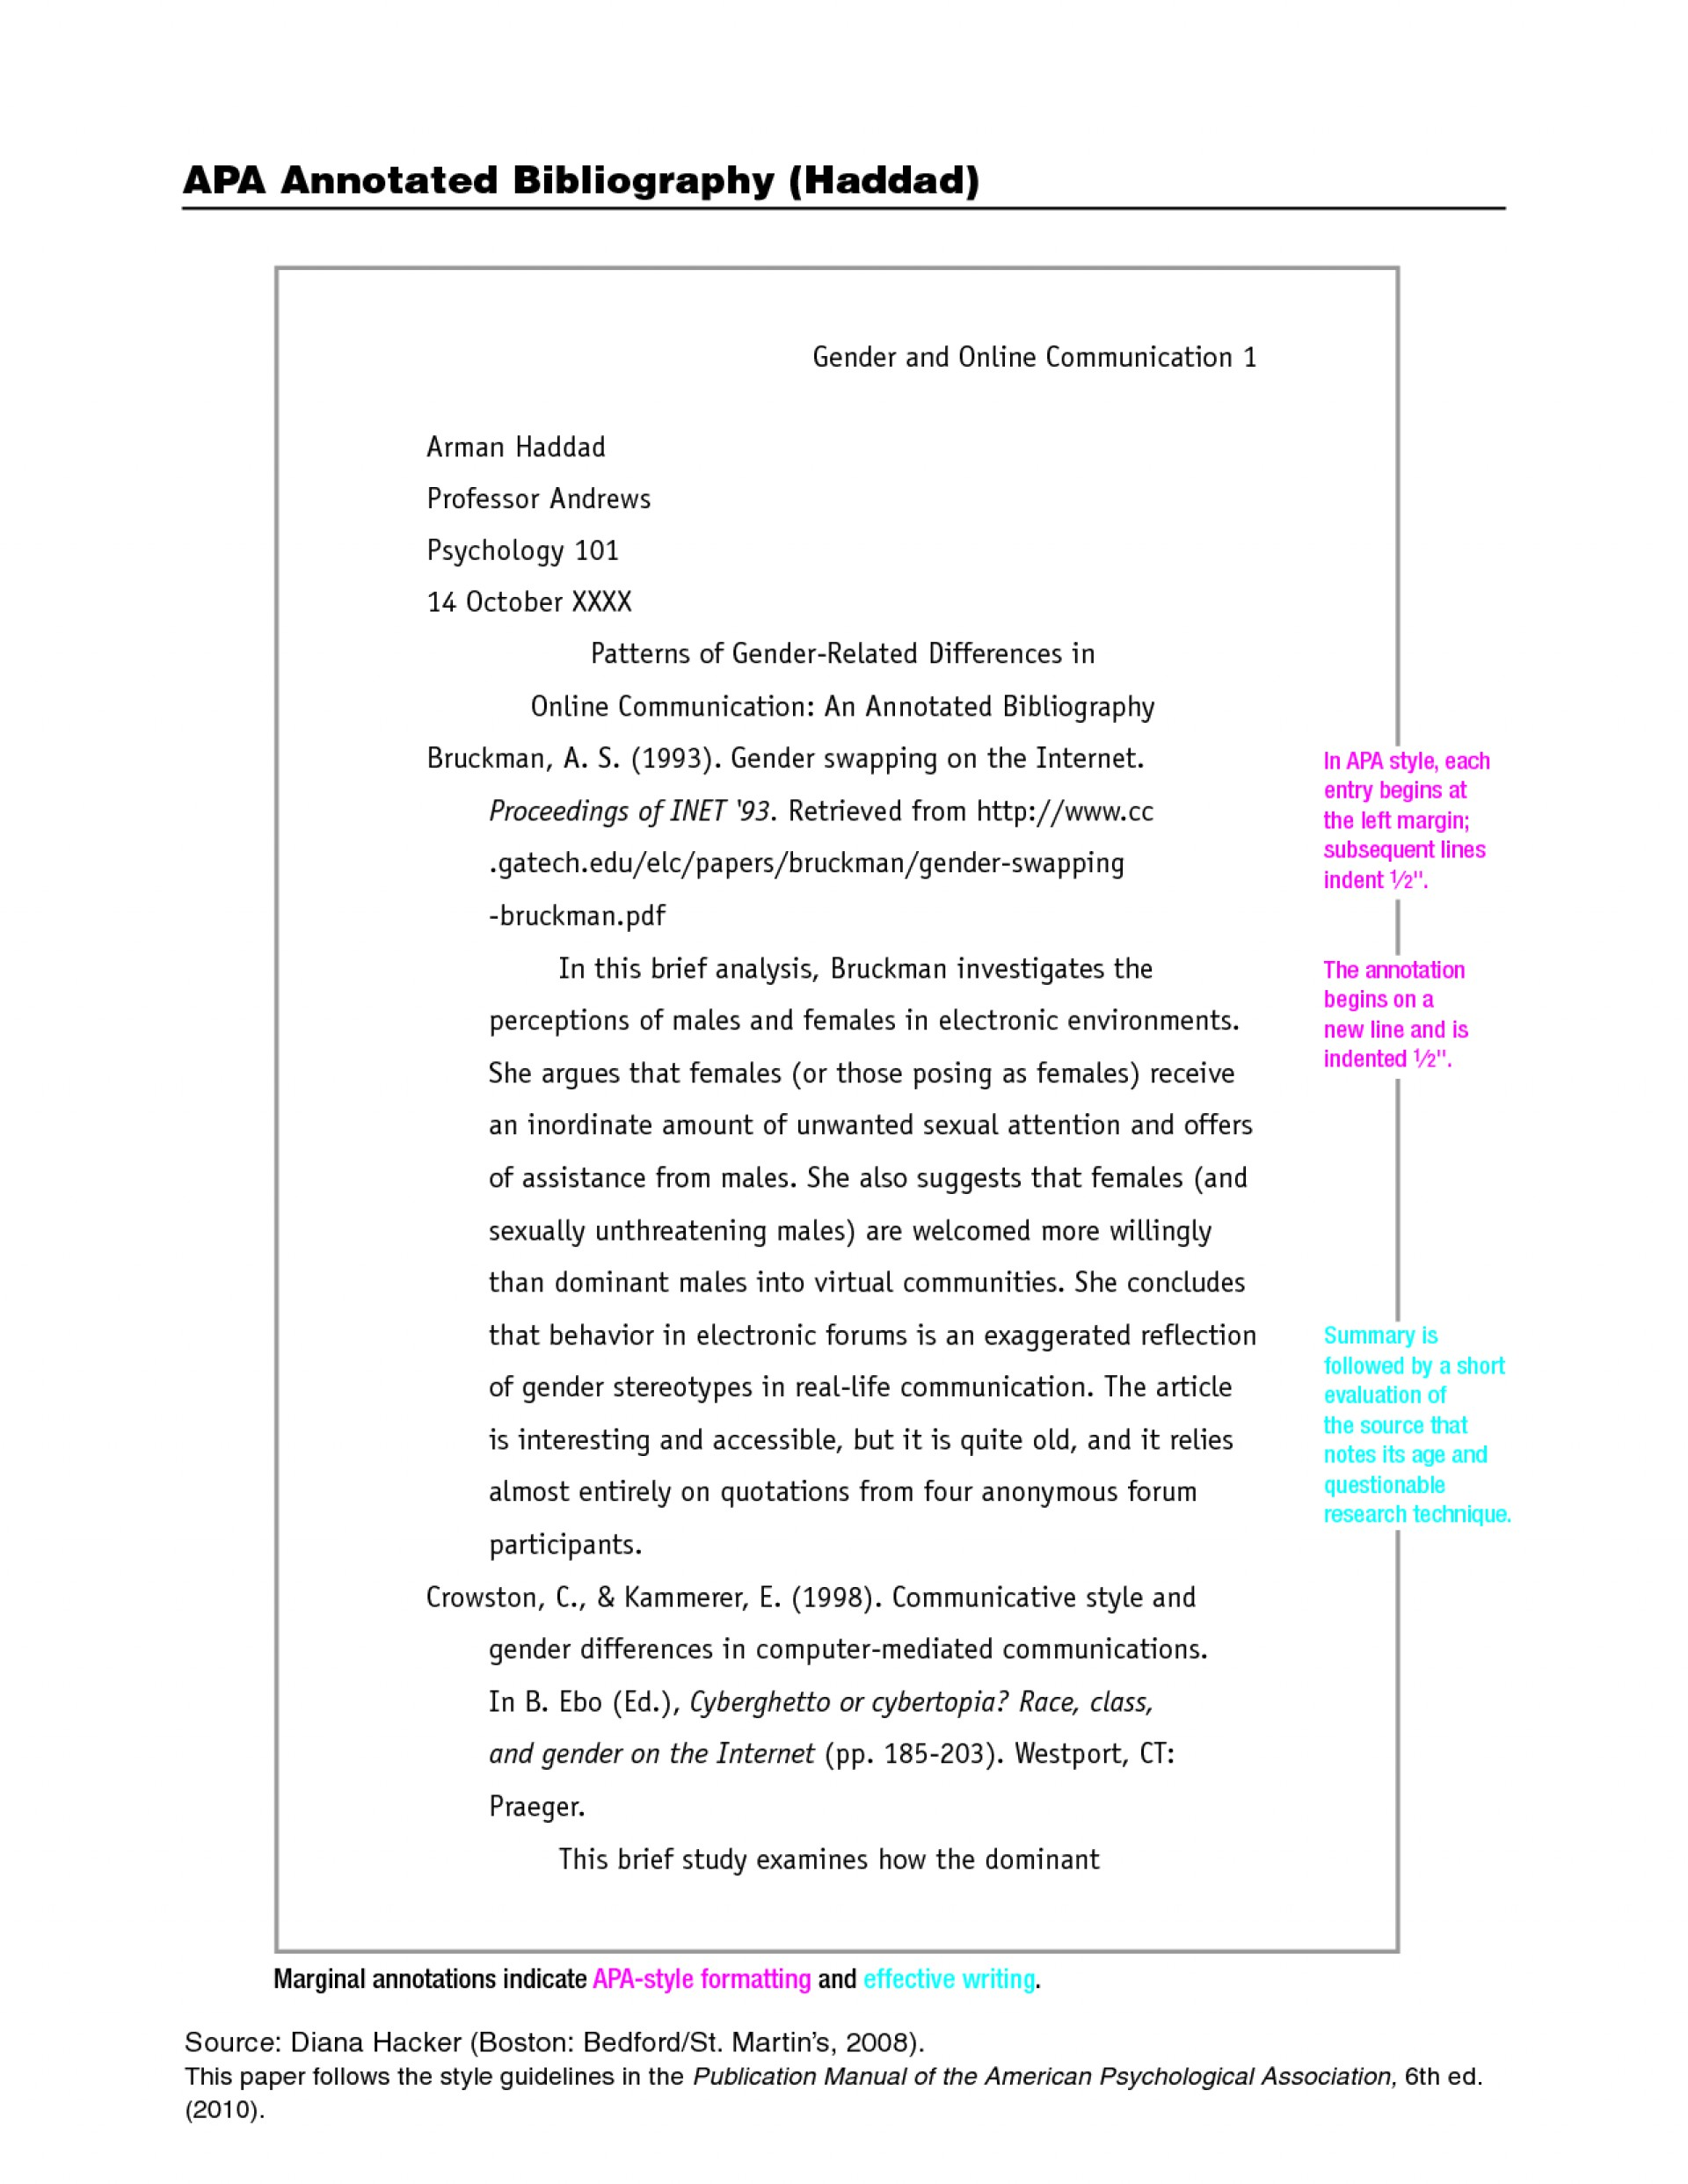 015 Research Paper How To Write Good Fast 1198784868 Unusual A Do You 3 Page On Food 1920